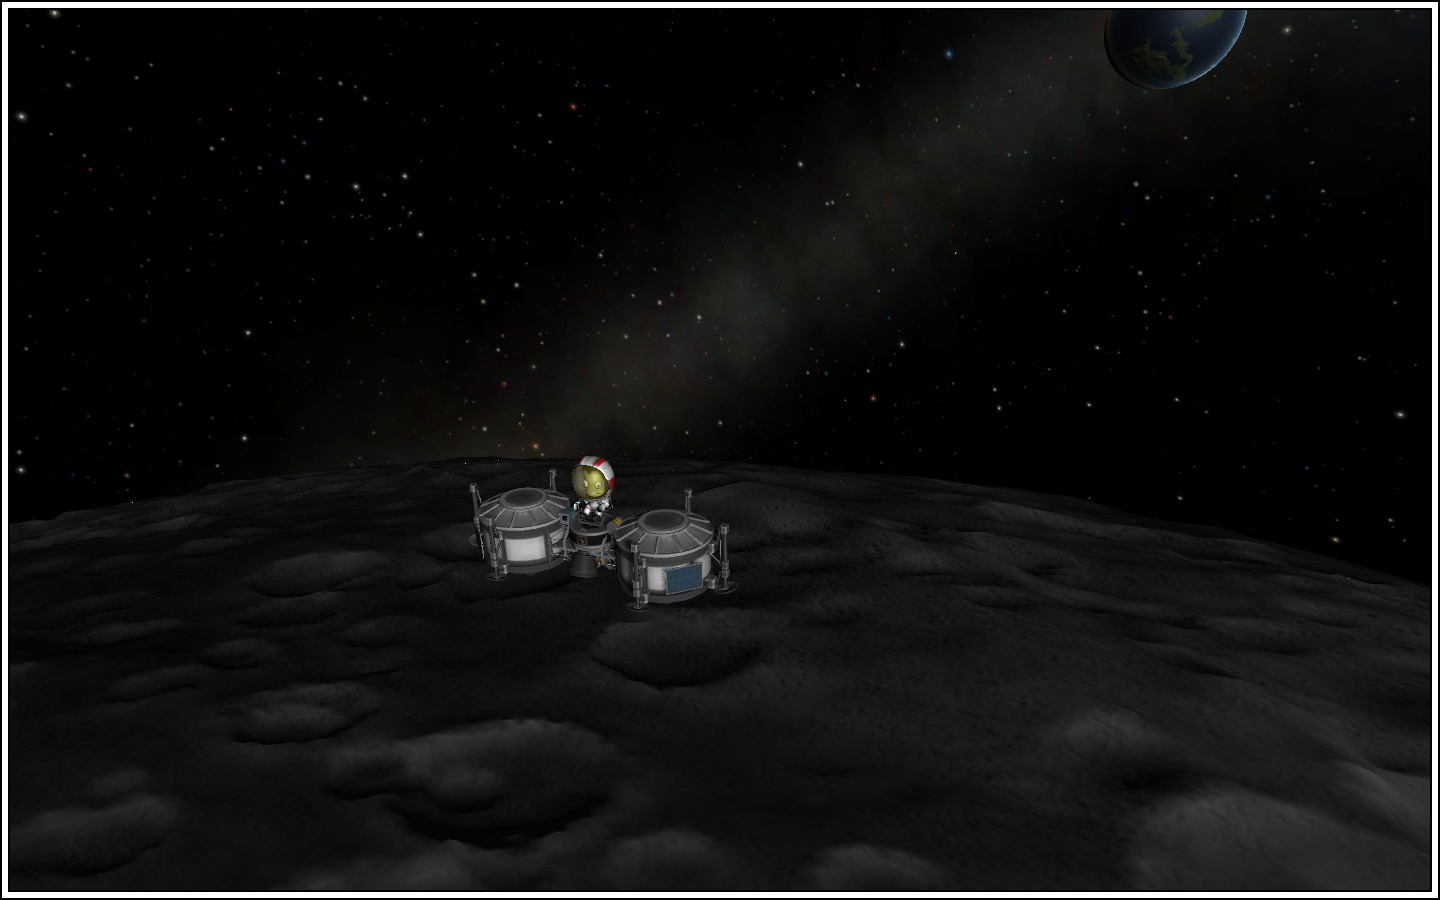 Professor Pfefferfresser: Kerbal Space Program: Mun Base ...